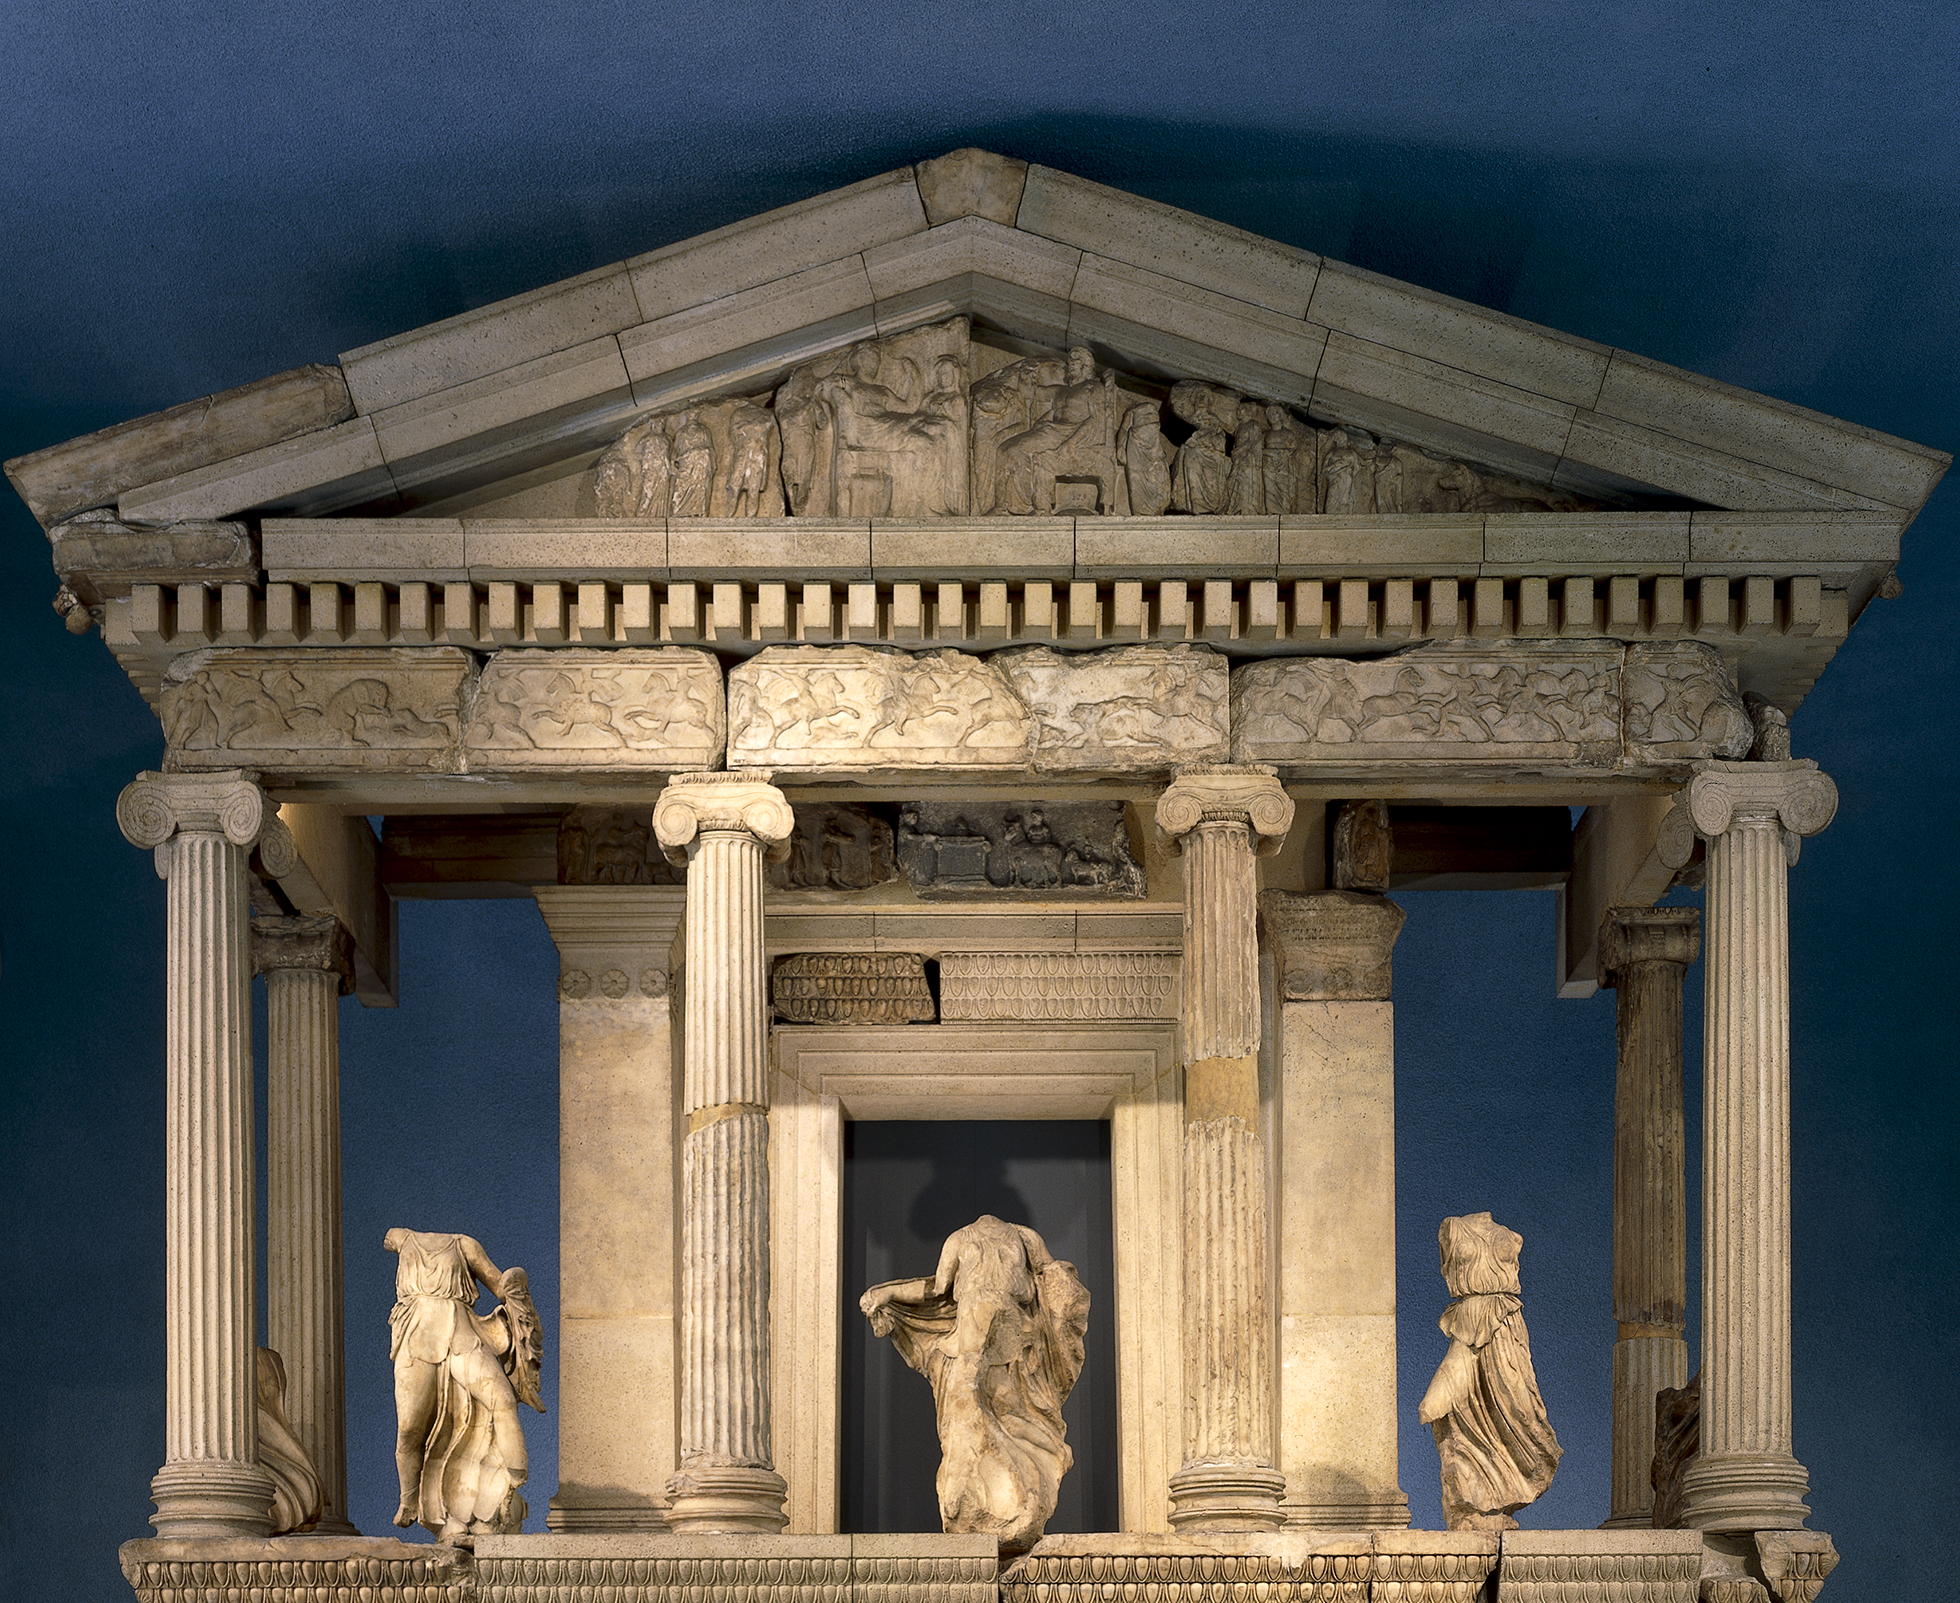 Image of Nereid Monument in the British Museum.